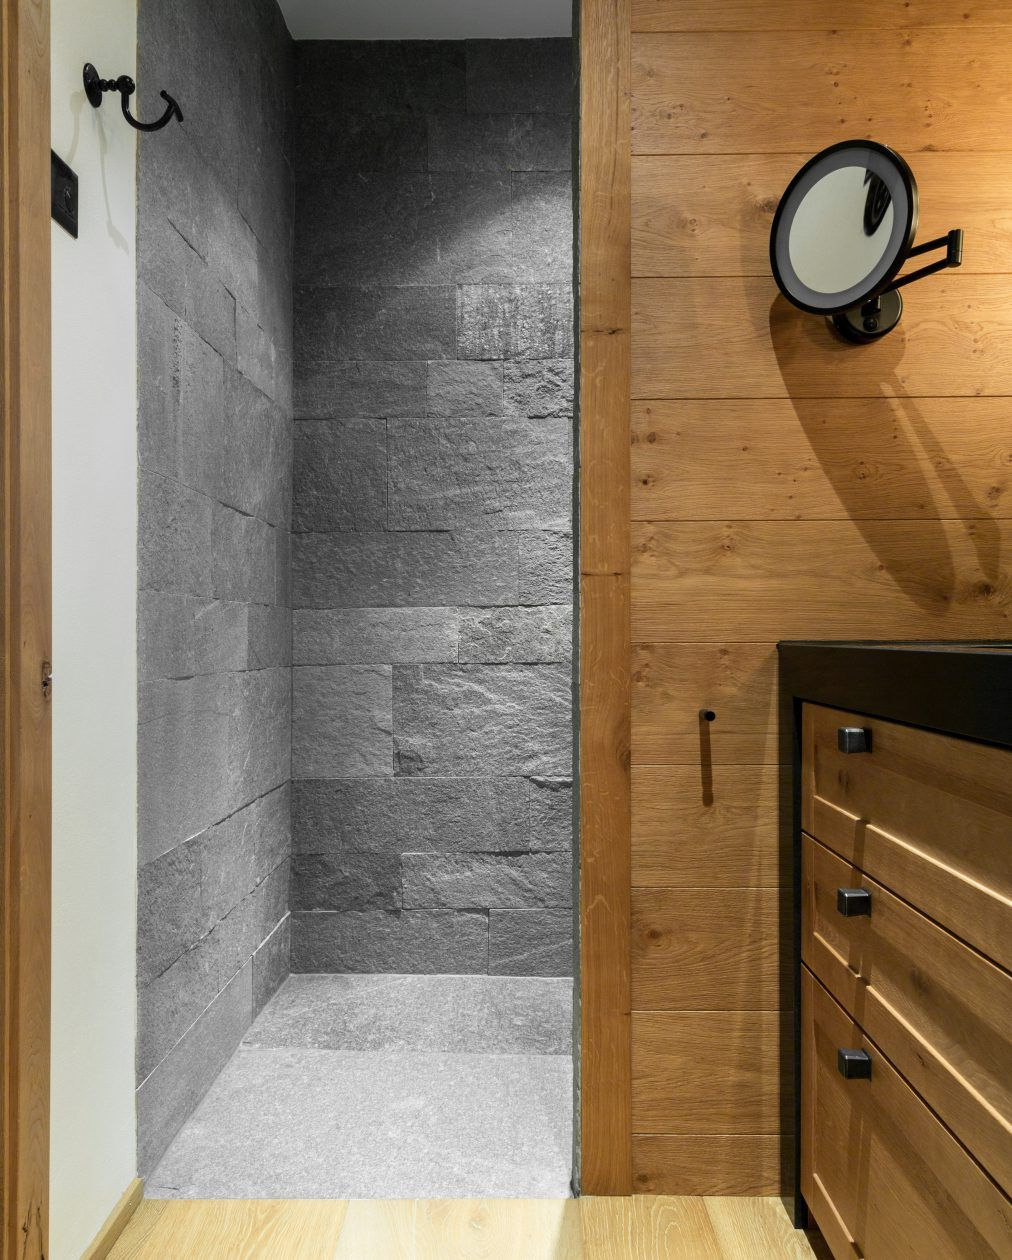 dusche im badezimmer mit w nden und boden aus hellas quarzit haus pinterest boden. Black Bedroom Furniture Sets. Home Design Ideas